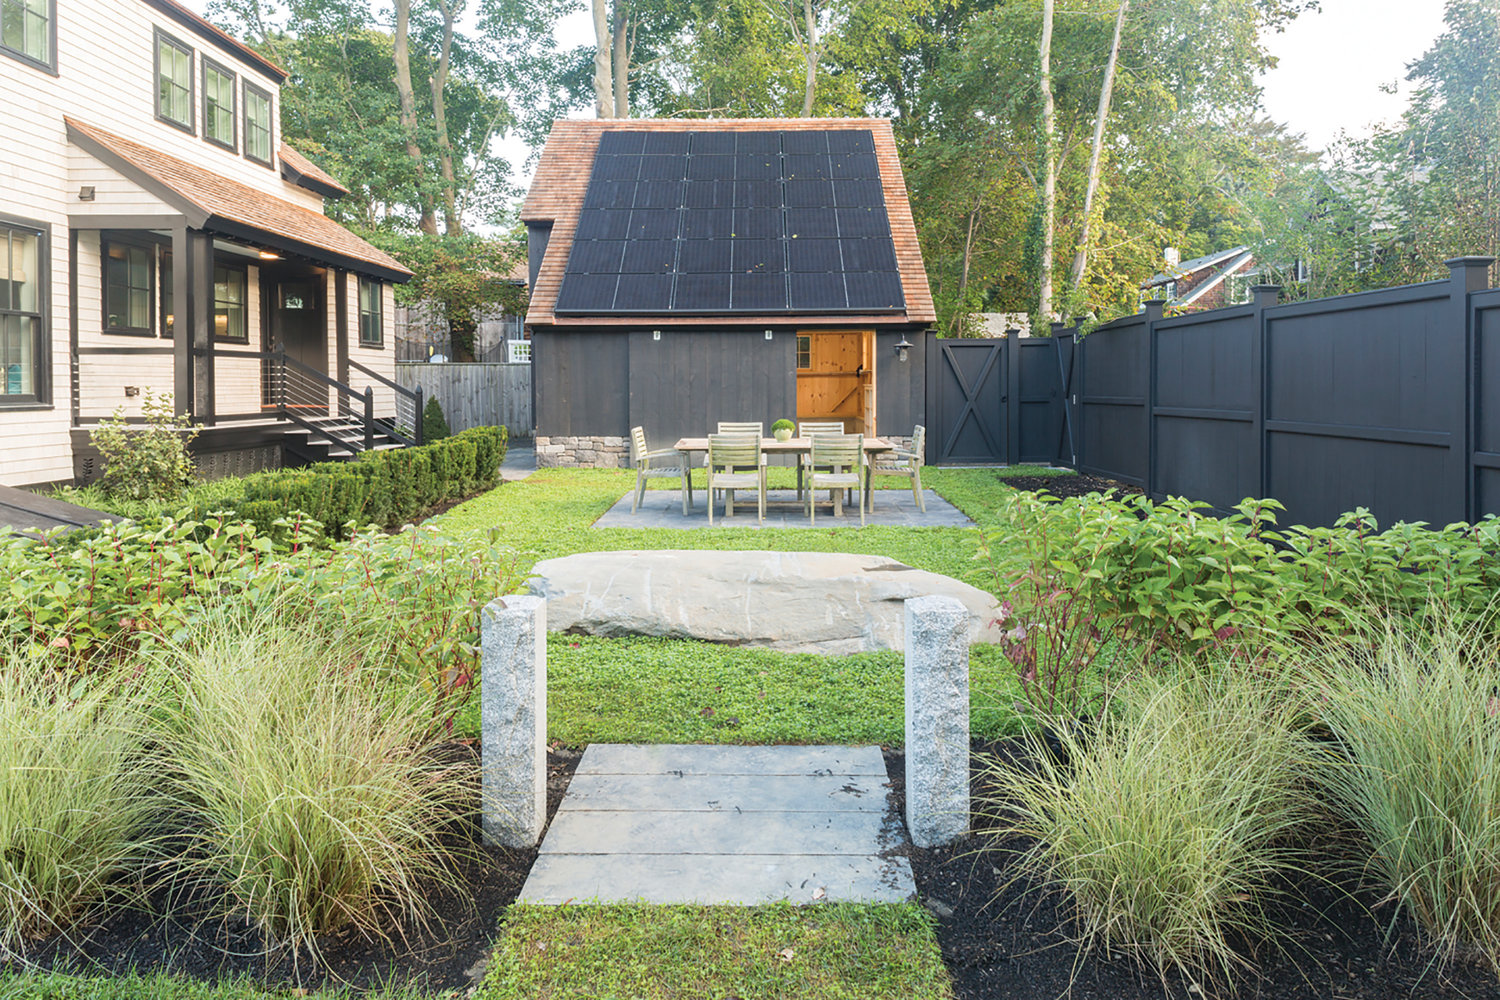 The Jamestown Net-Zero Home features a 5.5 kilowatt solar panel system from Vivint Solar to offset the energy use. A dark, earth tone shingle complements the black panels and keeps them from upstaging the well manicured backyard oasis